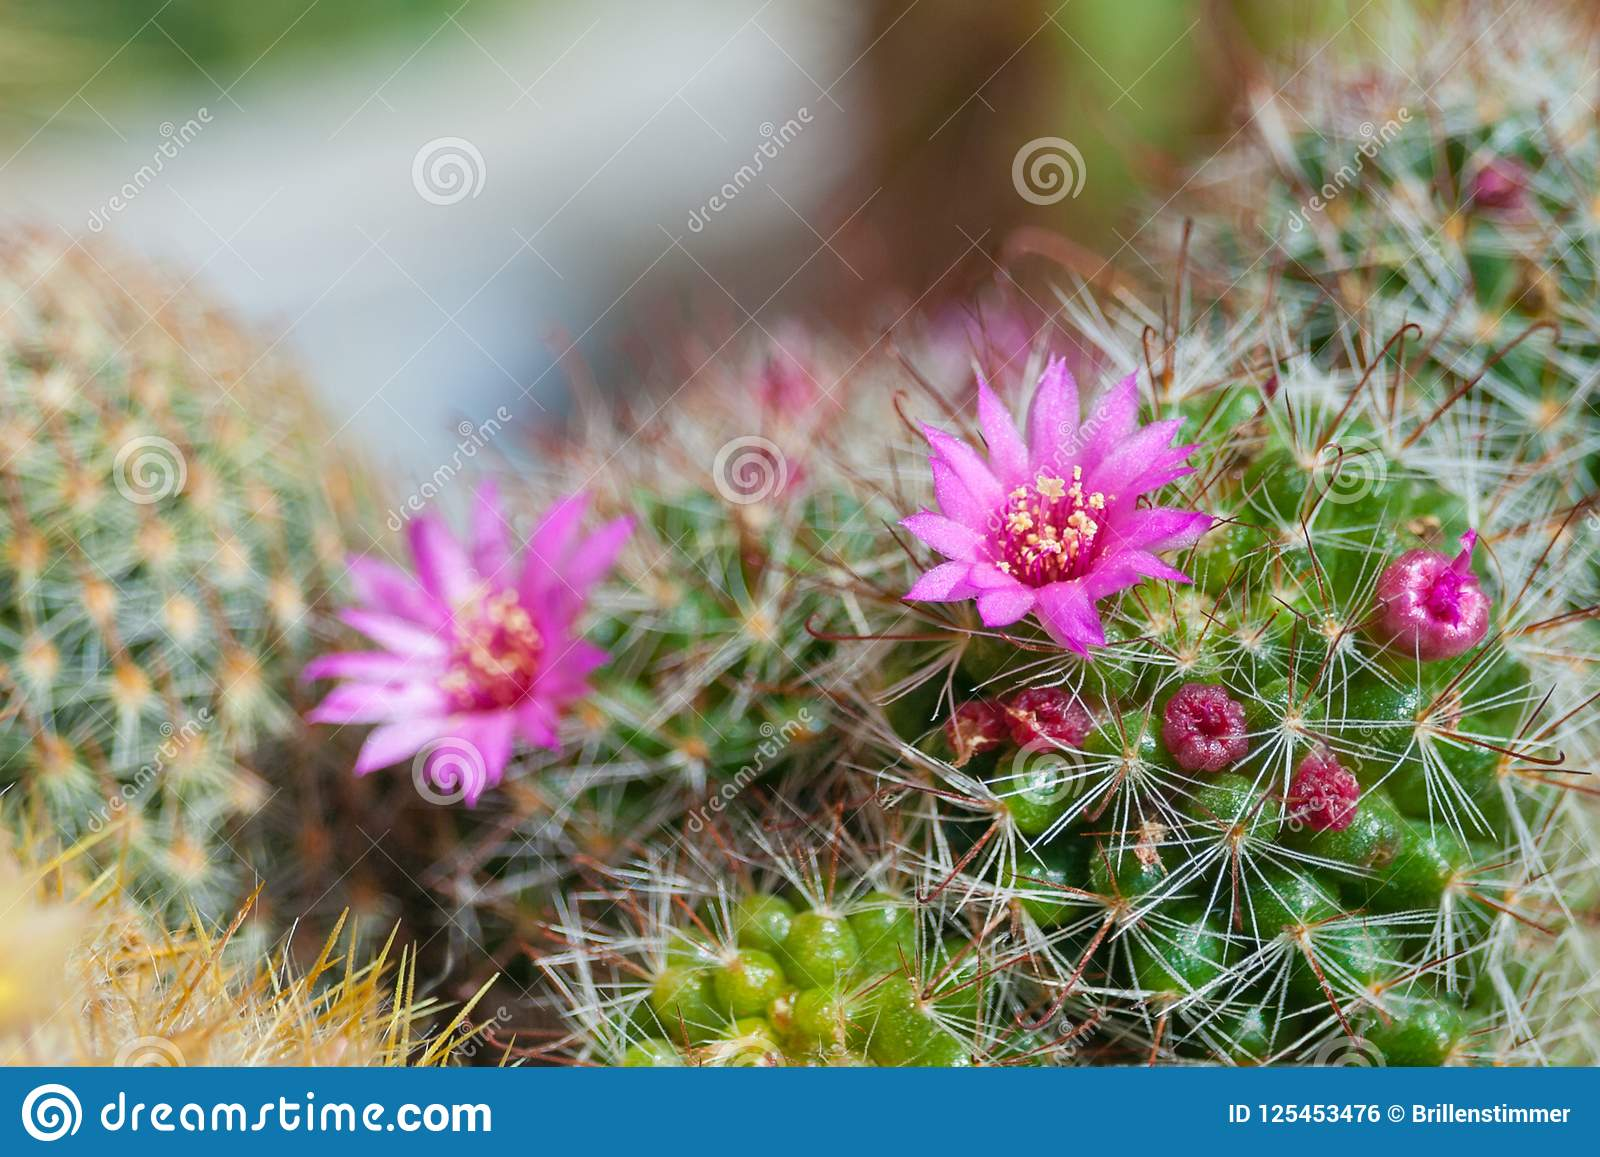 Cactus Mammillaria With Pink Flowers Stock Photo Image Of